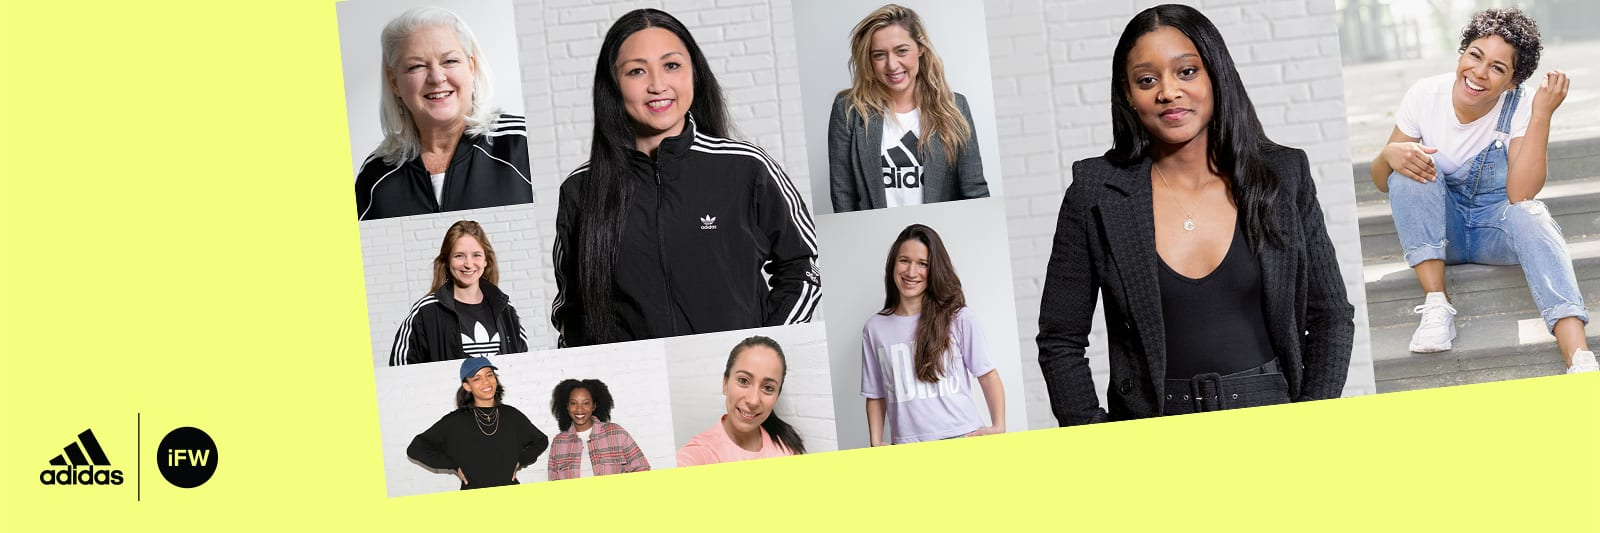 ADIDAS AND IFUNDWOMEN PARTNER TO SUPPORT WOMEN ENTREPRENEURS